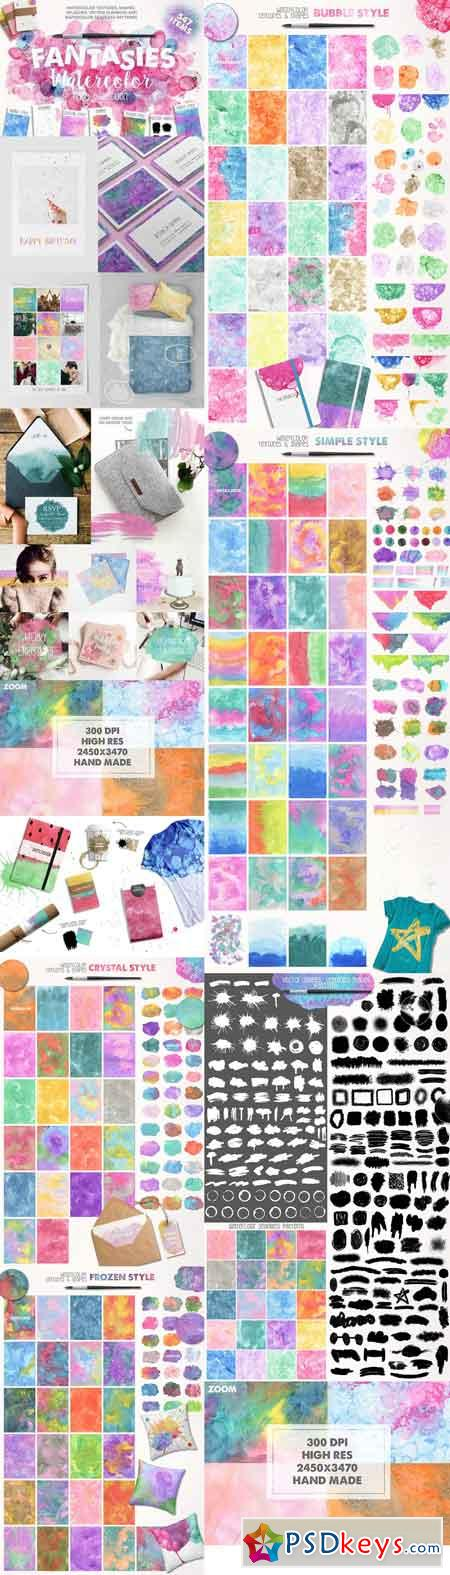 Fantasies Watercolor Collection 1184082